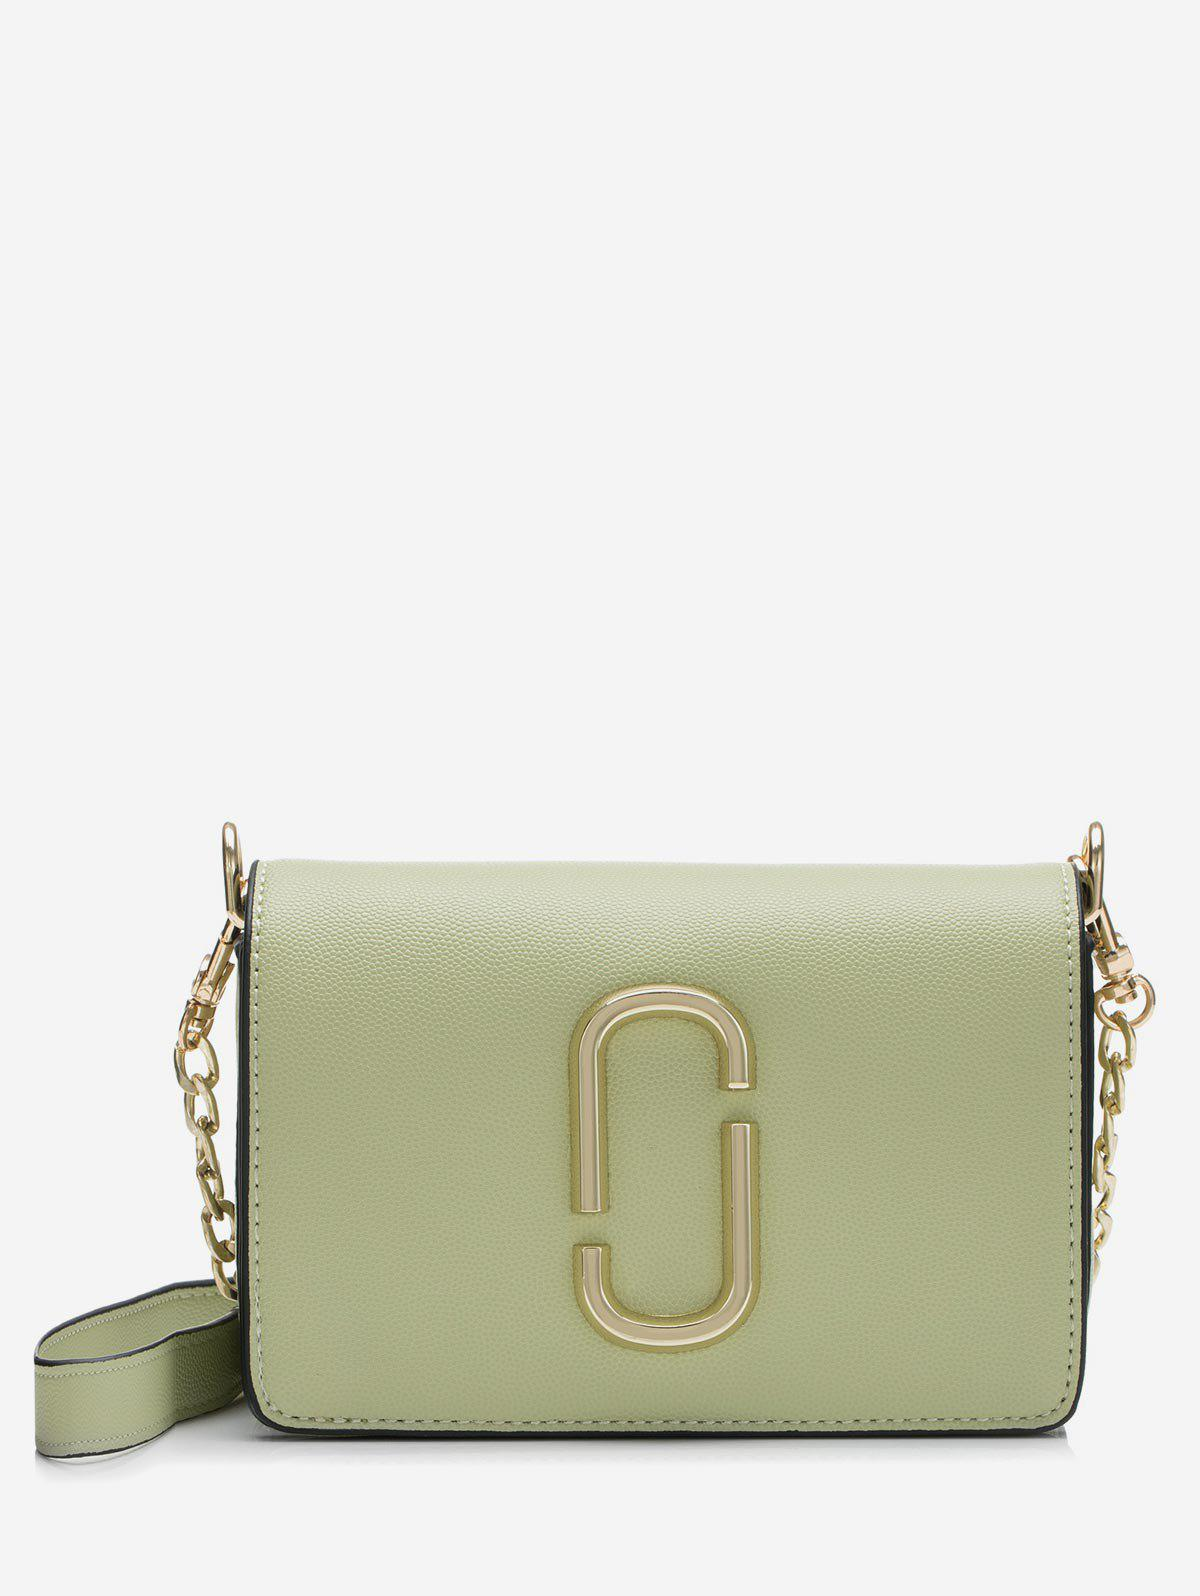 Store Metal Buckle Flap Mini Crossbody Bag